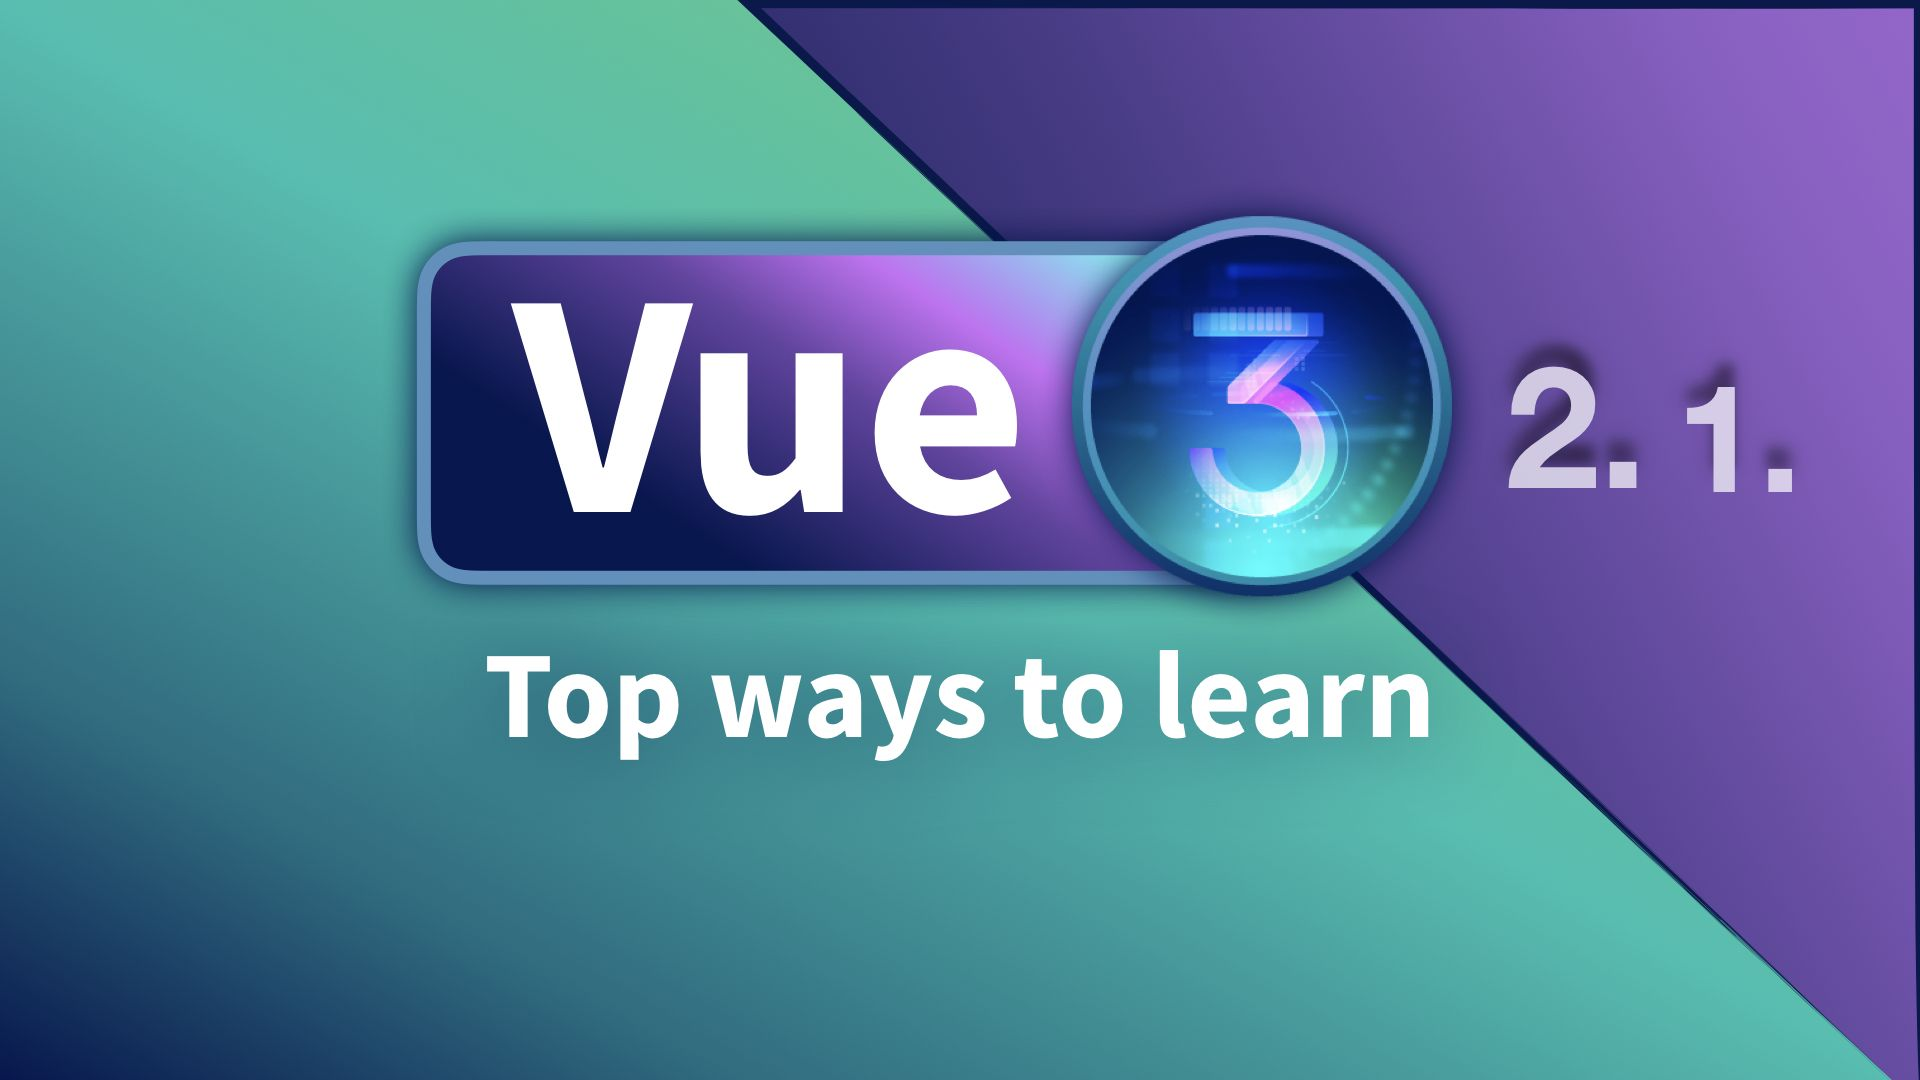 Top ways to learn Vue 3